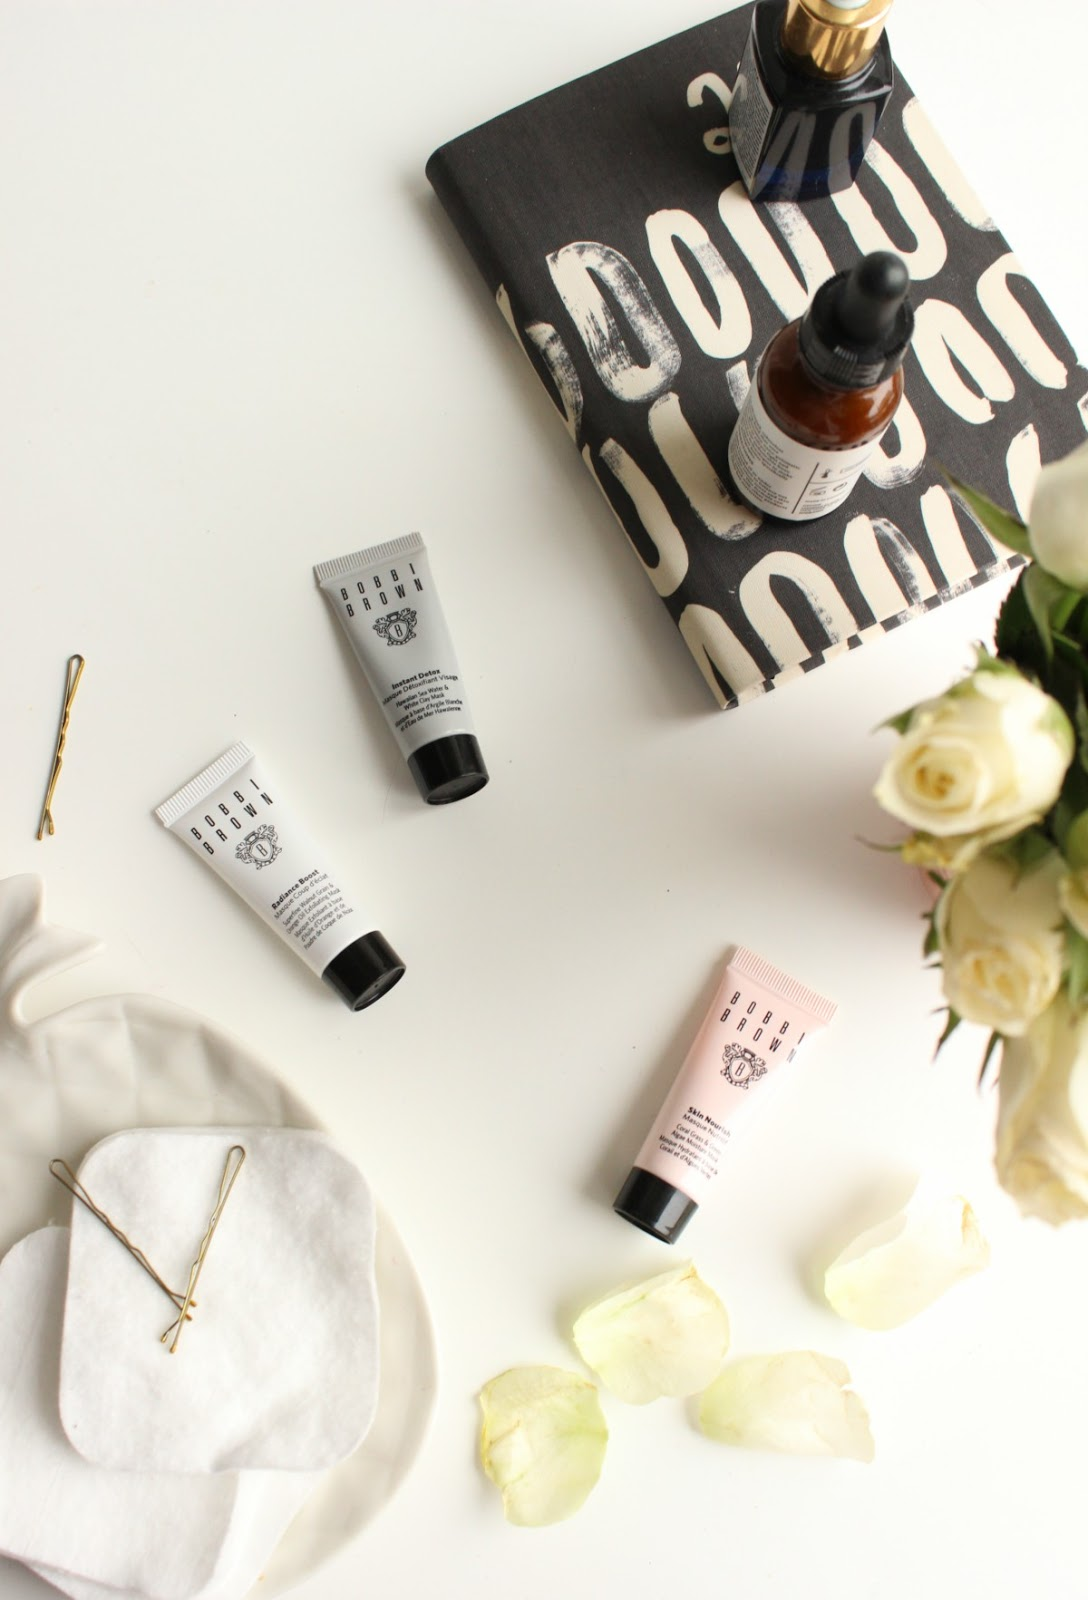 Bobbi Brown Face Mask Collection